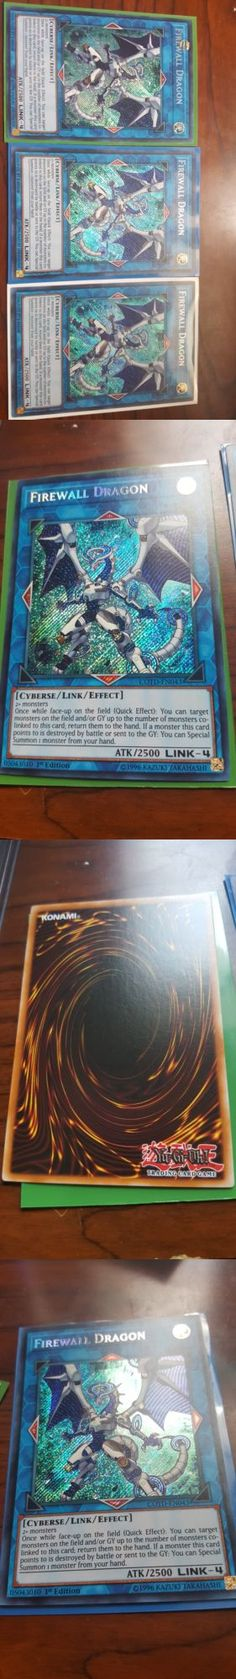 Yu-Gi-Oh Individual Cards 31395: Yugioh Cotd-En043 Firewall Dragon 1St Edition Secret Rare Card M Nm -> BUY IT NOW ONLY: $38.99 on eBay!